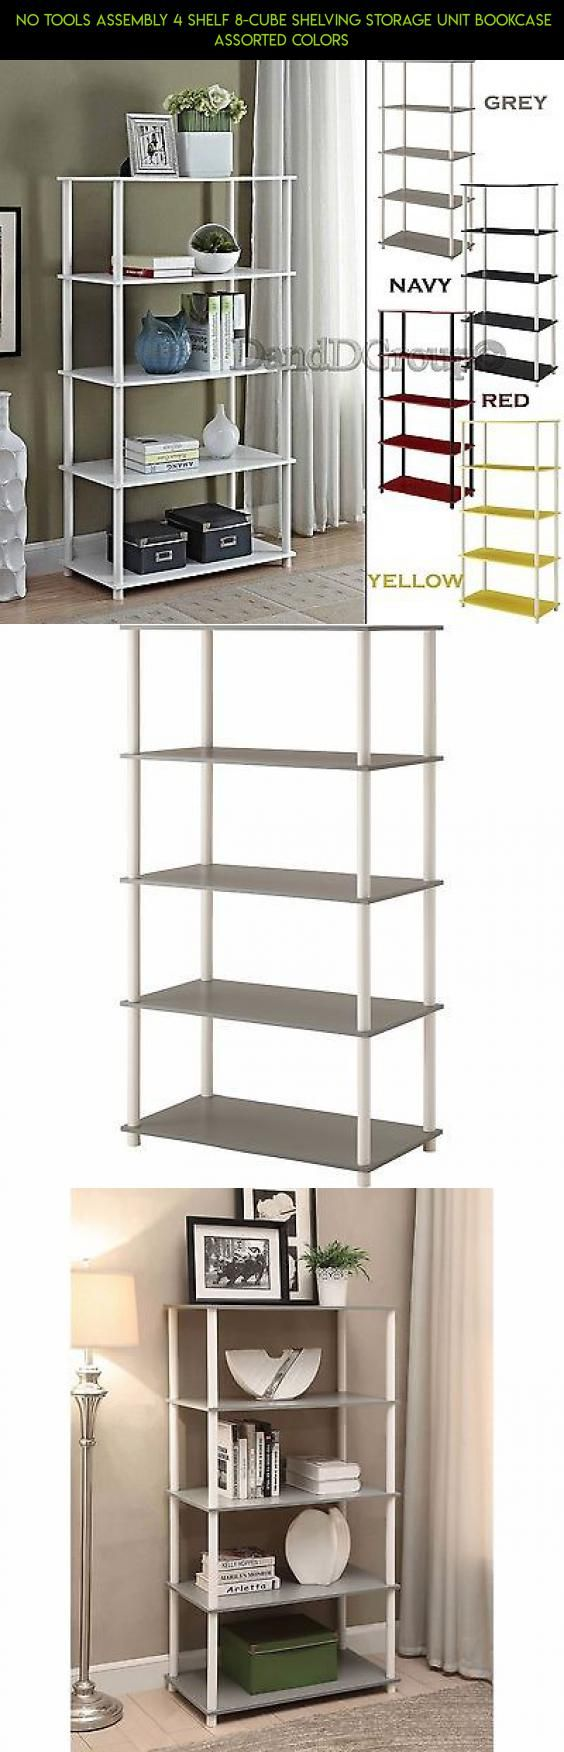 No Tools Assembly 4 Shelf 8 Cube Shelving Storage Unit Bookcase ASSORTED  COLORS #cube